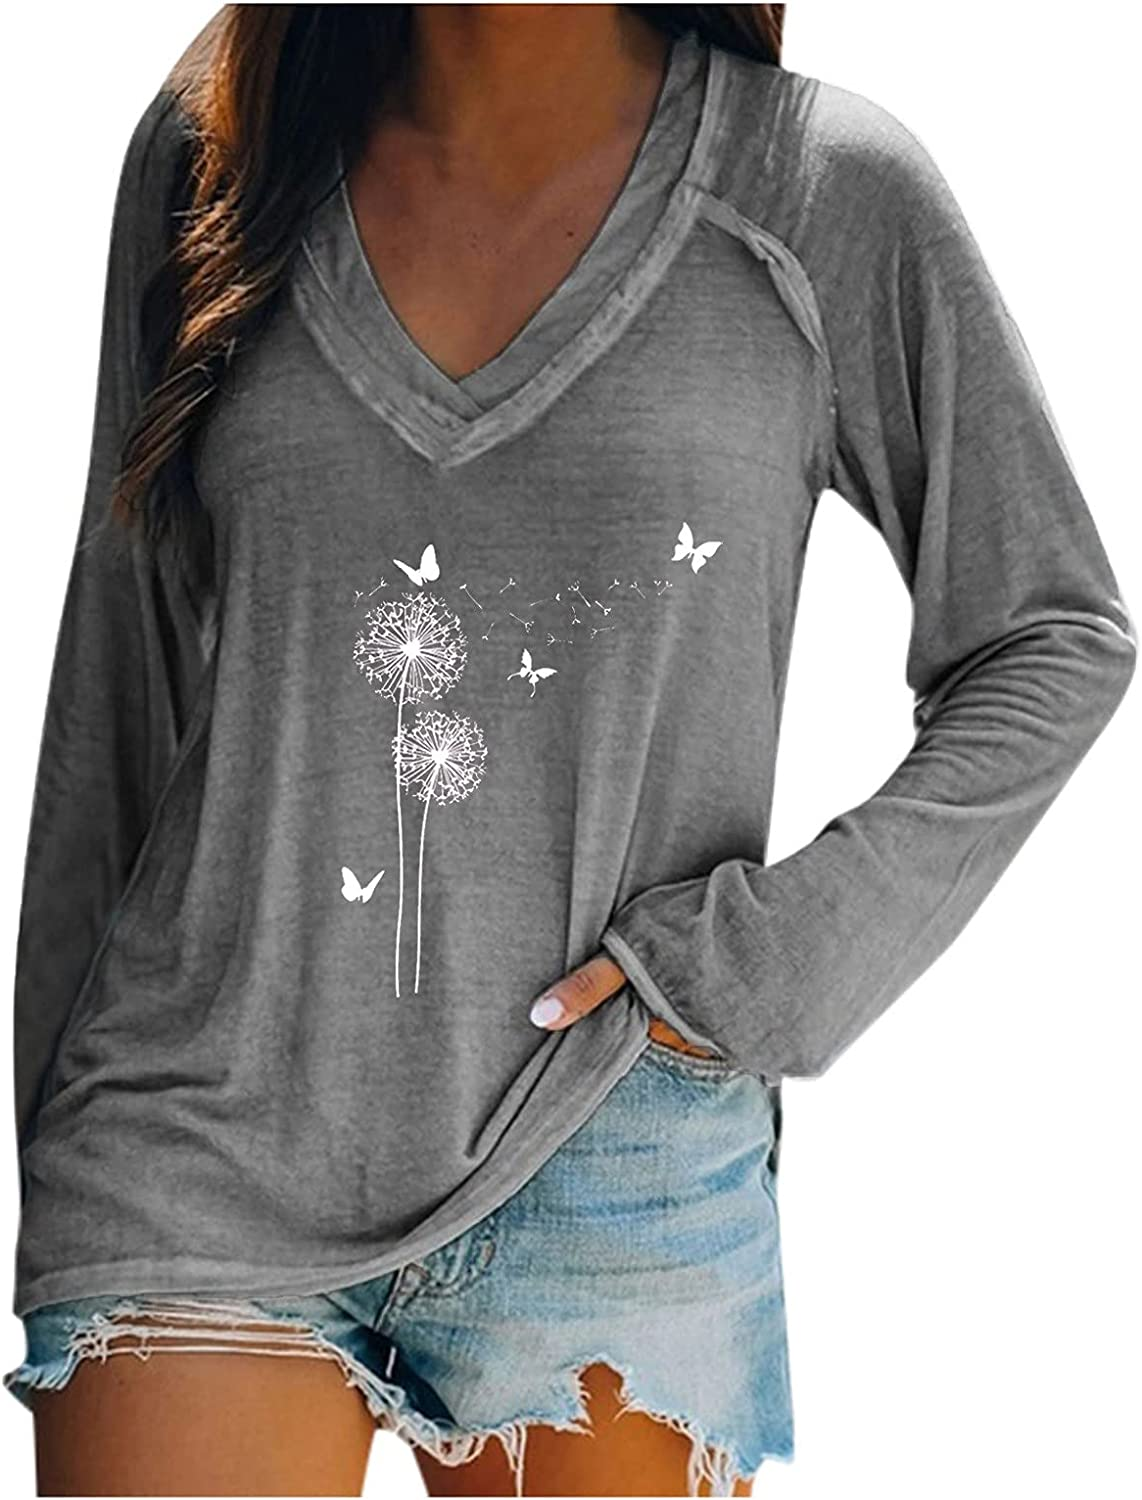 Long Sleeve Top for Women Casual Dandelion Graphic Print Tunic Tops Vintage V-Neck Shirts Loose Pullover Blouse Tops